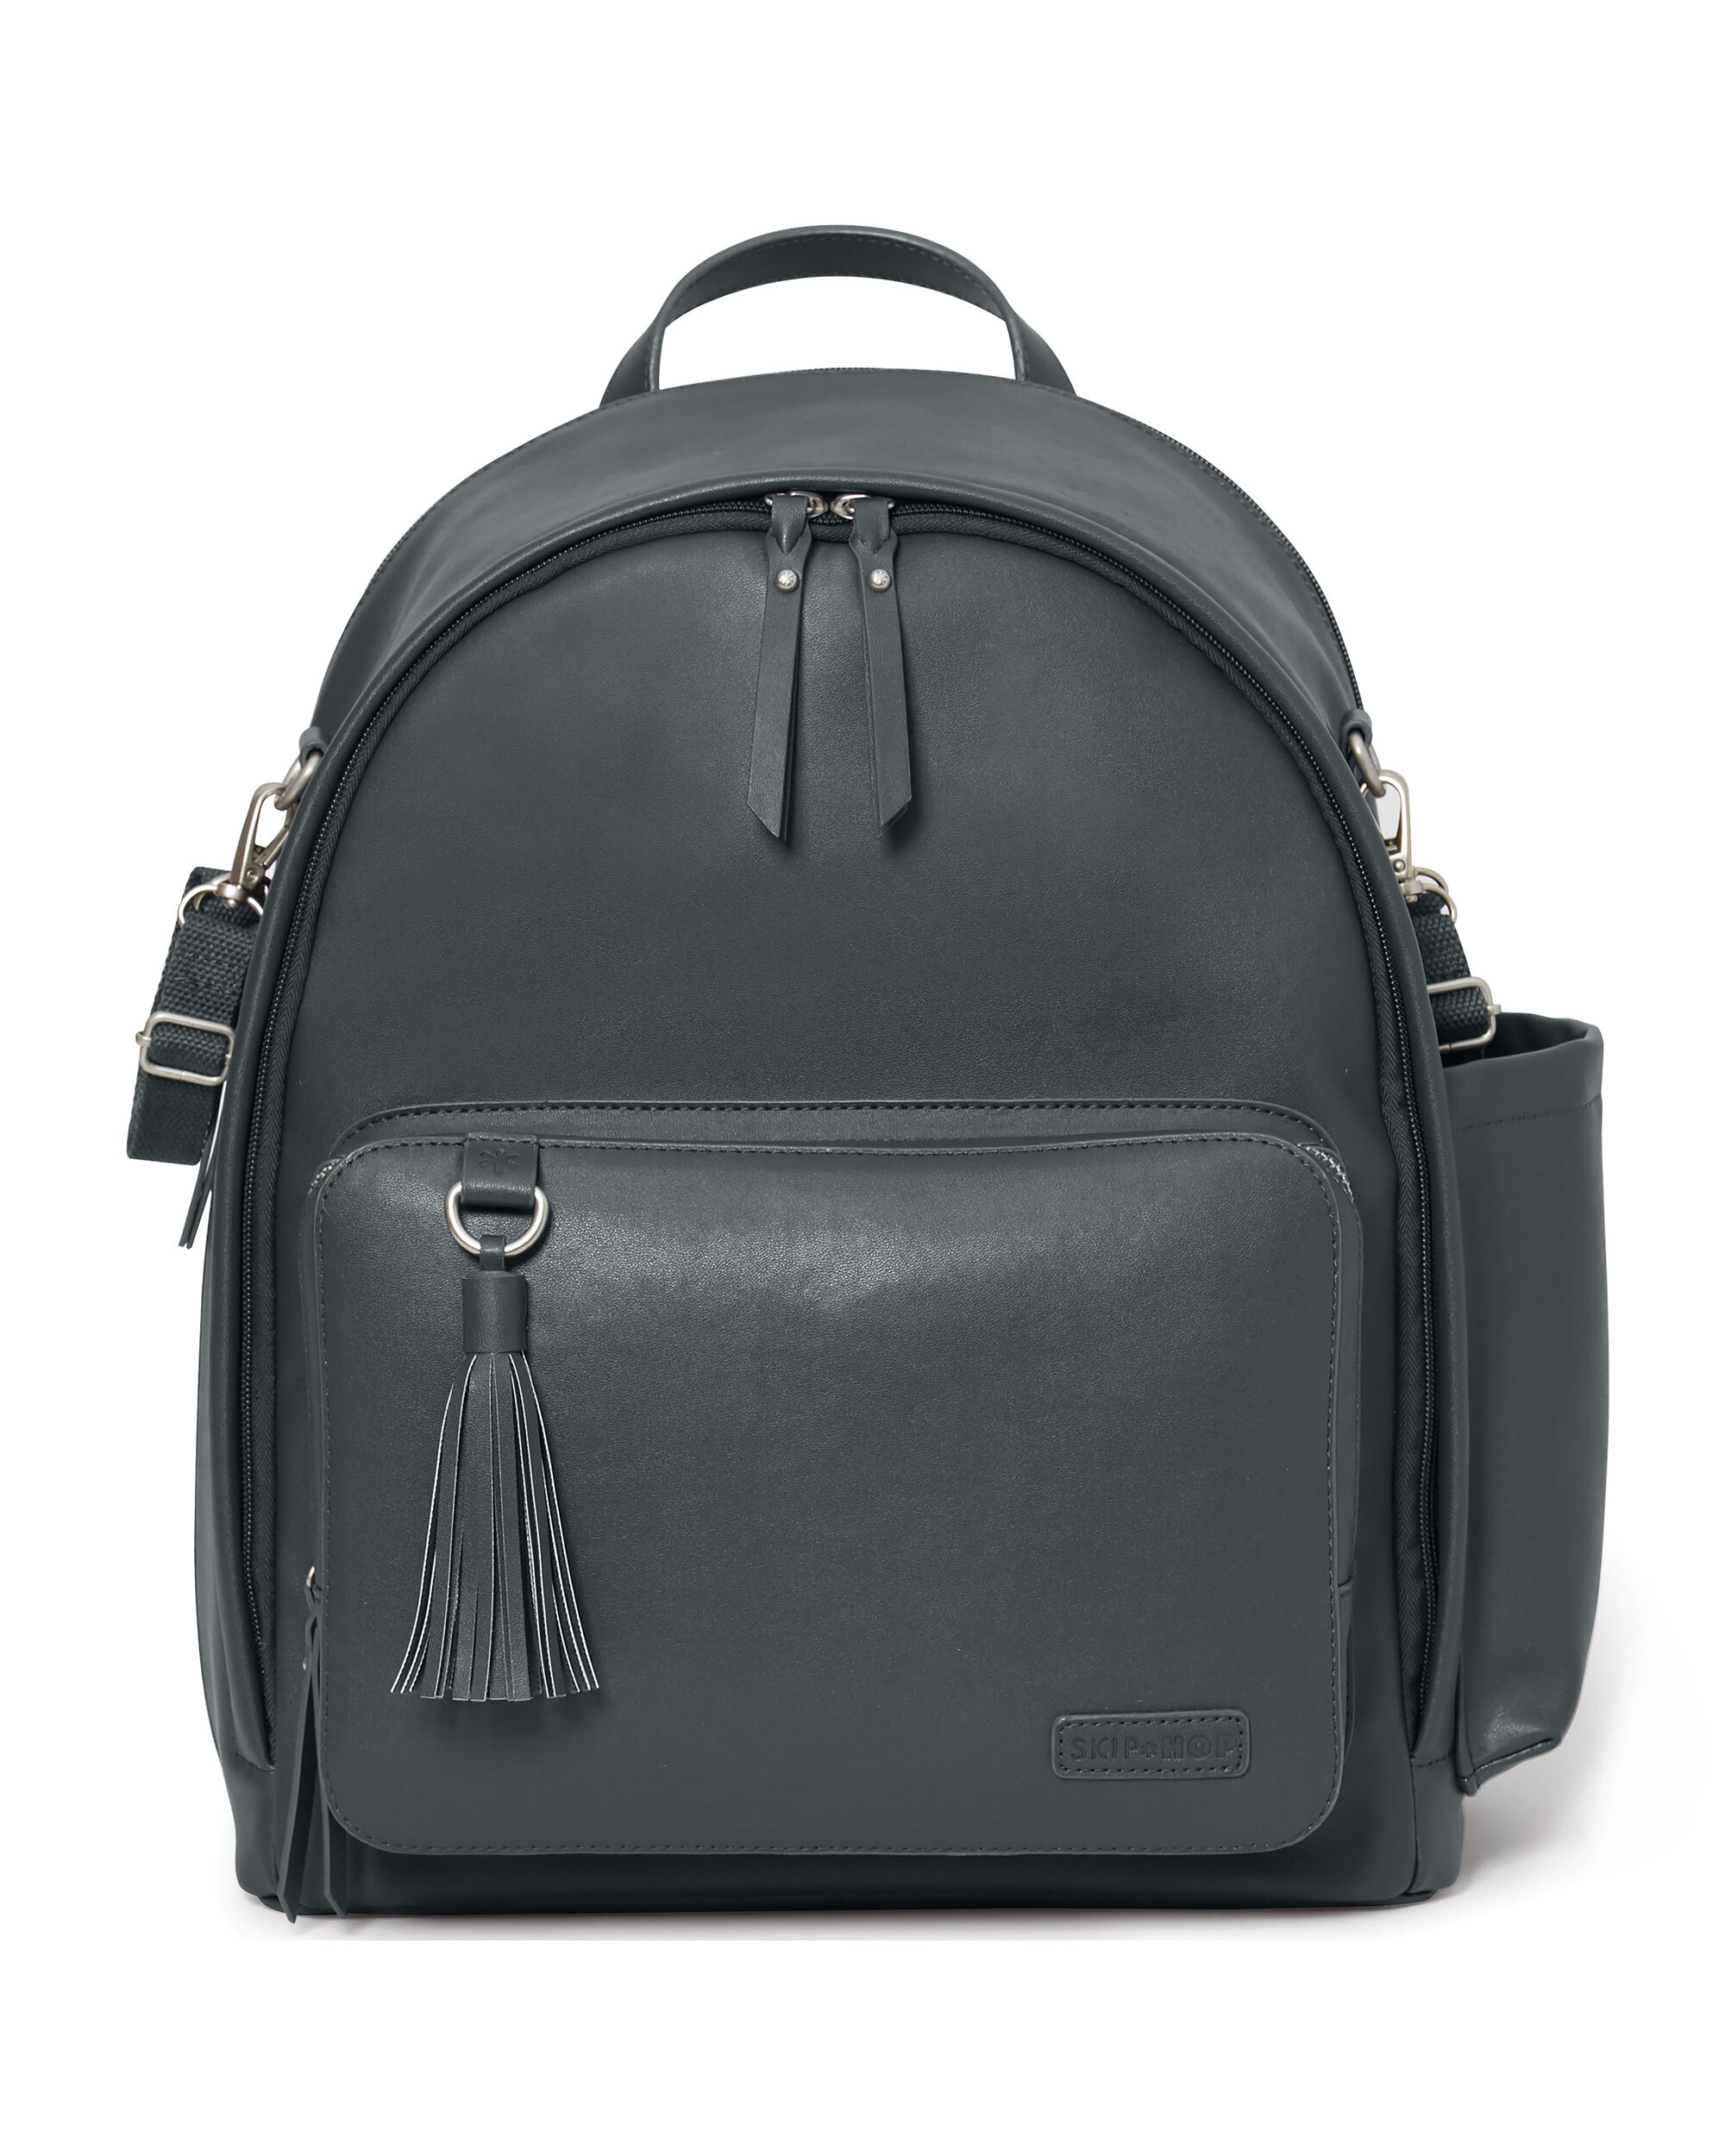 greenwich simply chic backpack. Black Bedroom Furniture Sets. Home Design Ideas